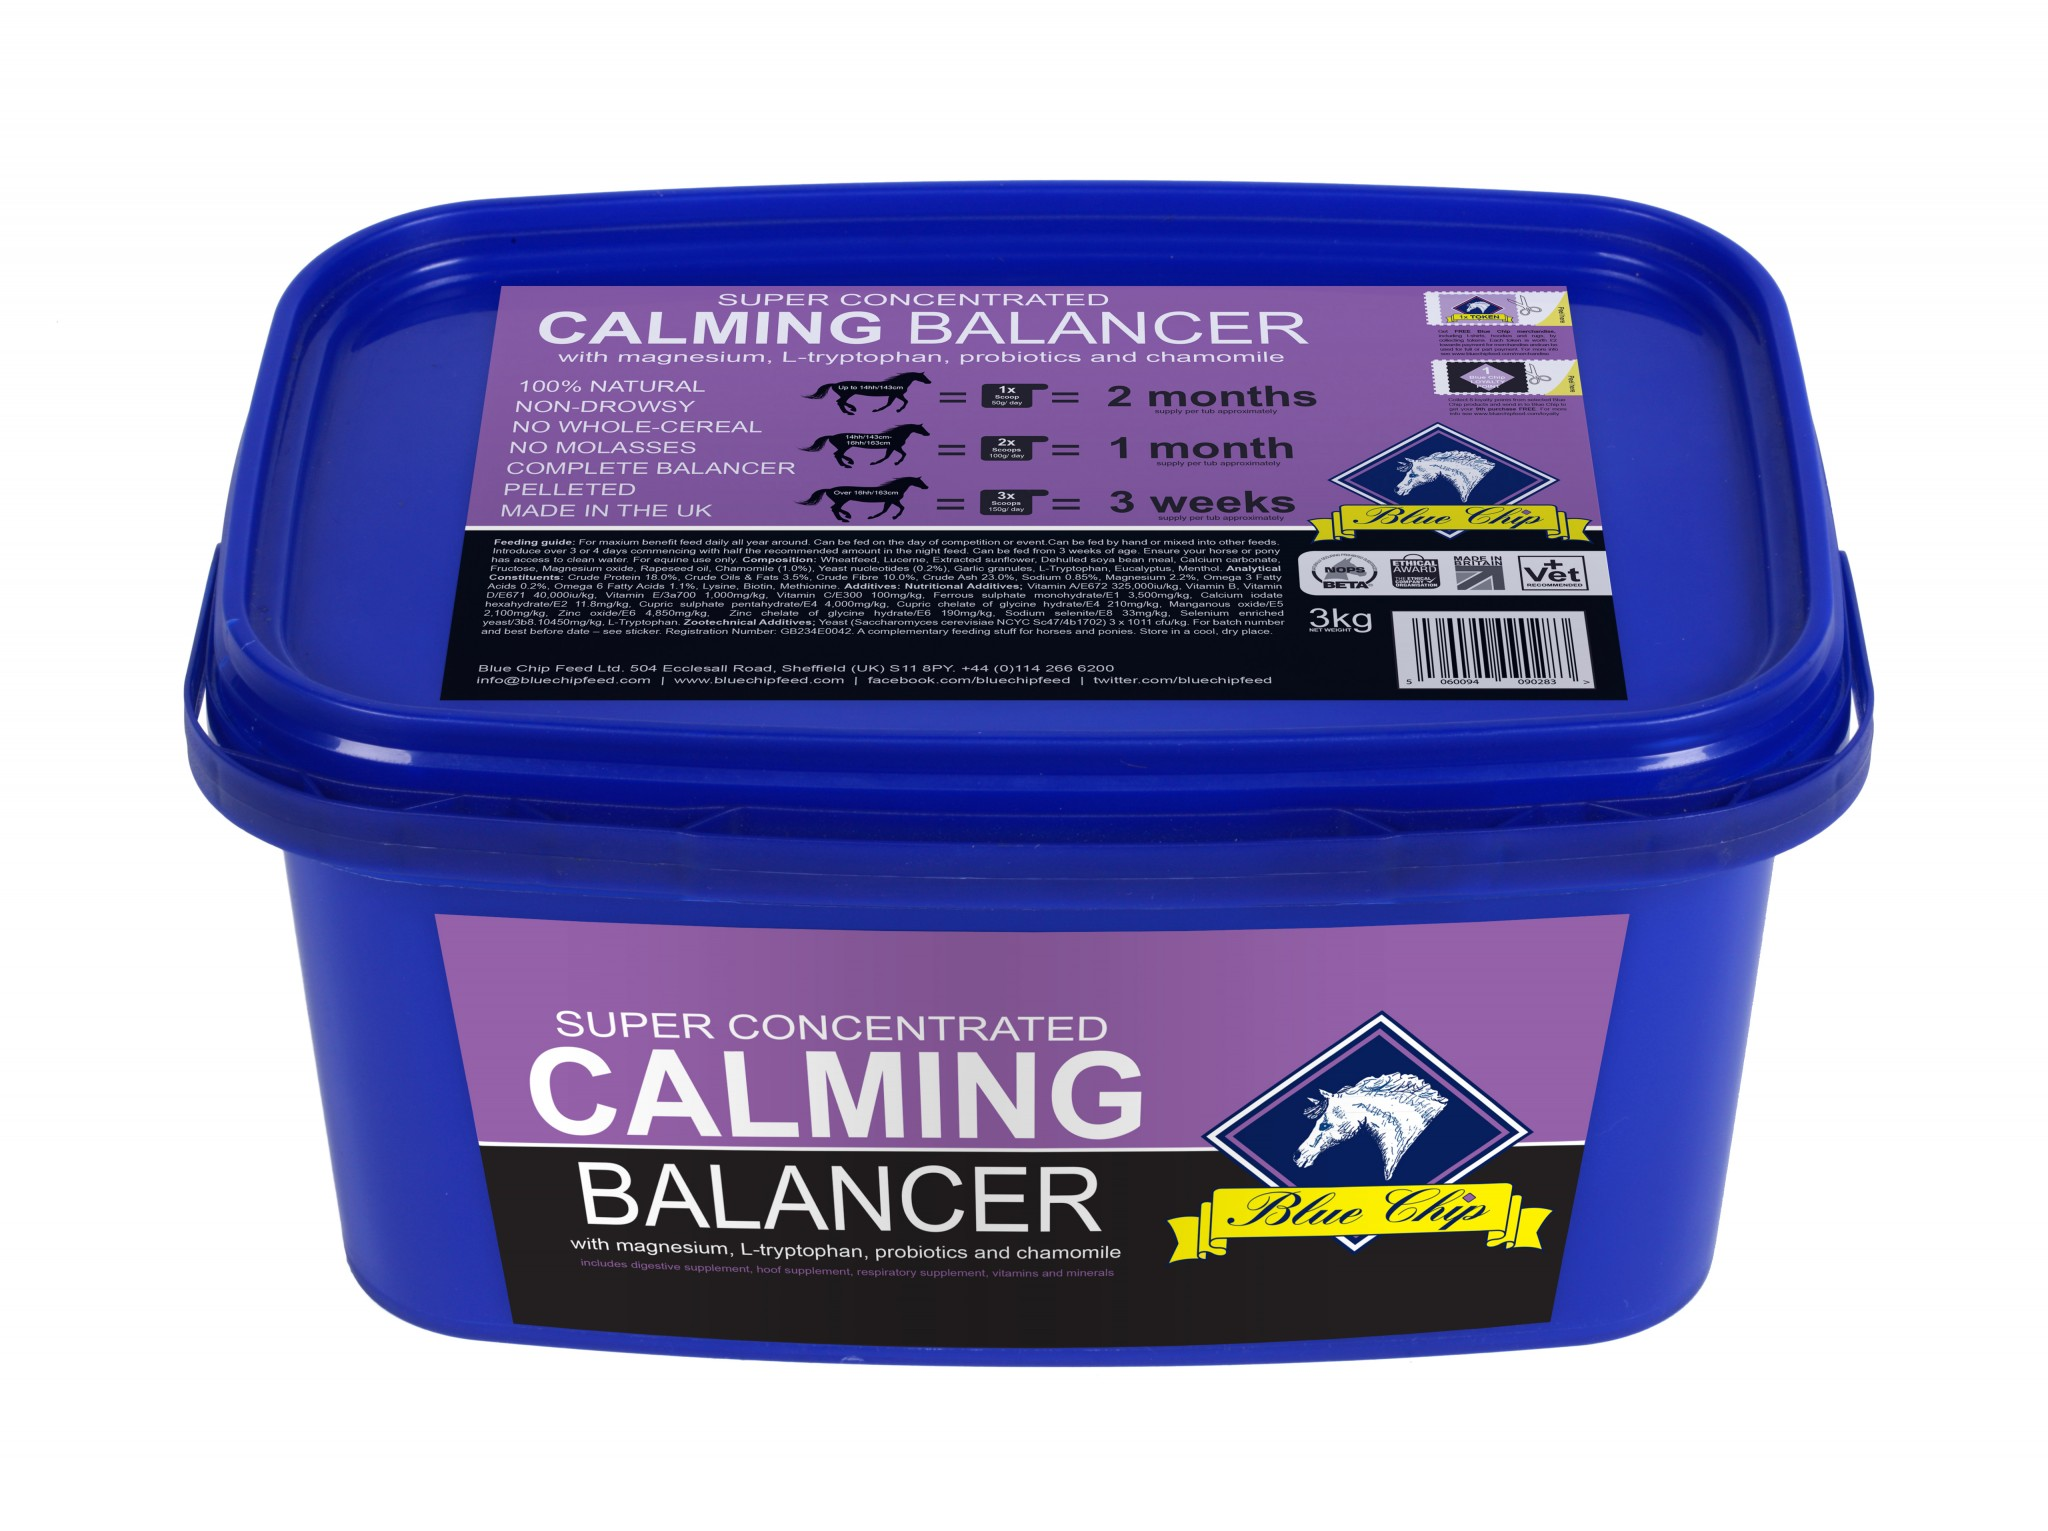 Calm balancer pack HR RGB - Overwhelming response to new product launch leads Blue Chip to extend their offer to customers